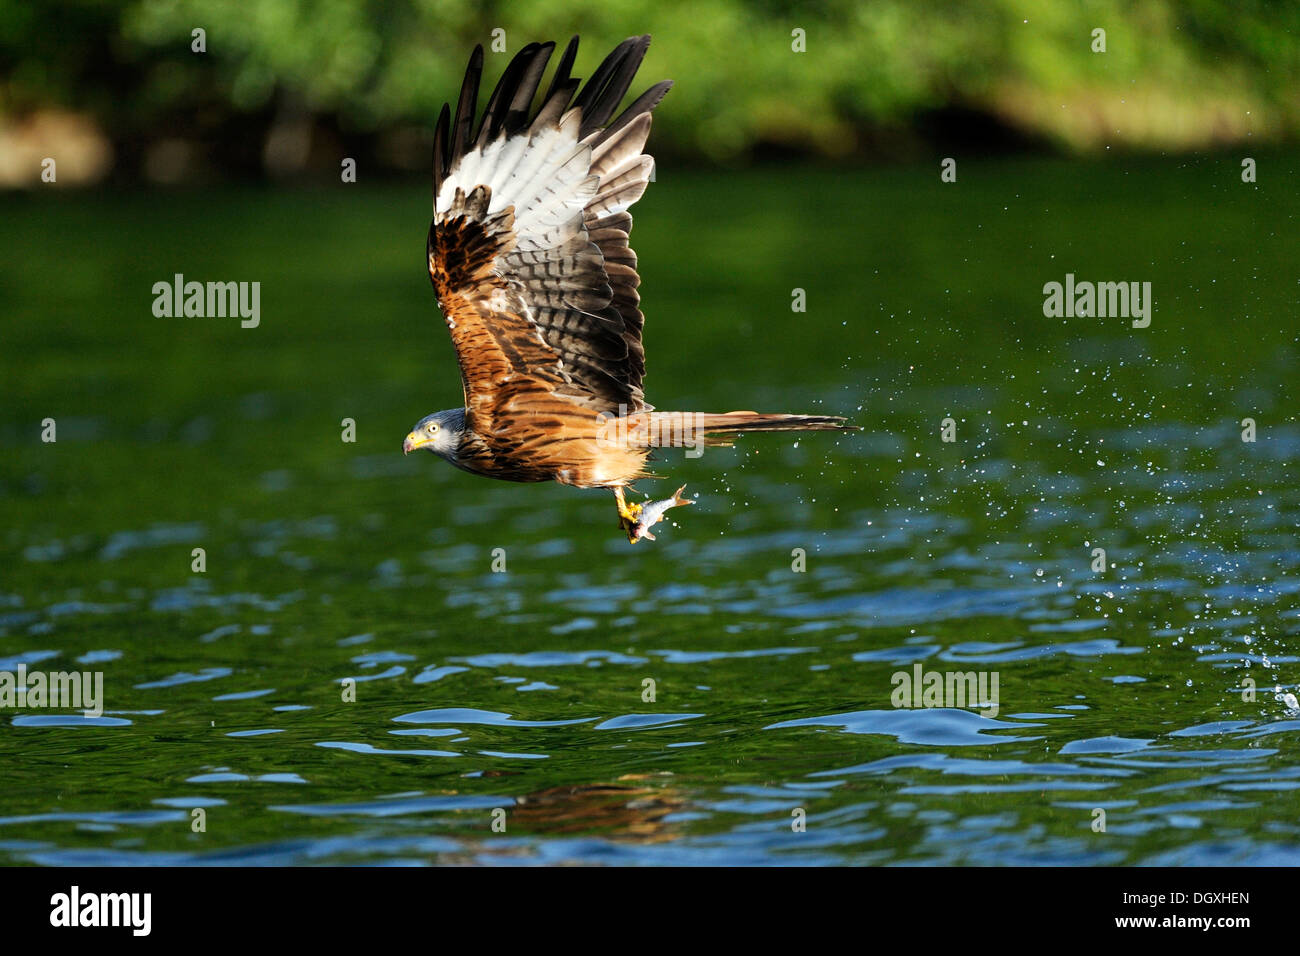 Red Kite (Milvus milvus), holding fish in its talons, Schmaler Luzin lake, Feldberg, Mecklenburg-Western Pomerania - Stock Image